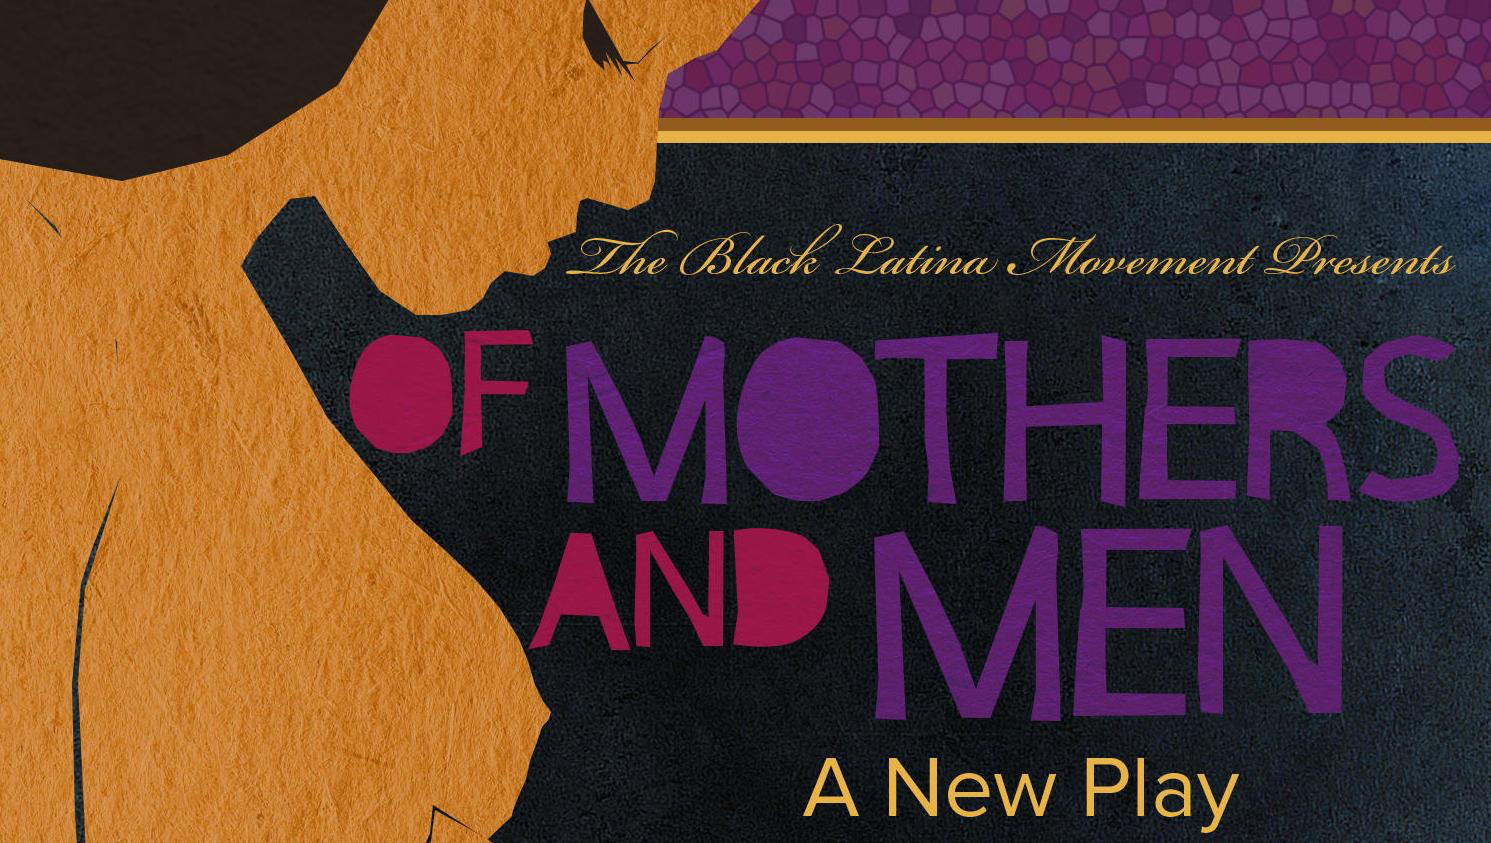 OF MOTHERS AND MEN - Derived from the American classic Of Mice and Men, Of Mothers and Men explores the varying relationships between women, their mothers, and the men in their lives. This monologue driven piece (comprised of nine vignettes) dives into the pivotal roles of two of the most influential people in one's life.